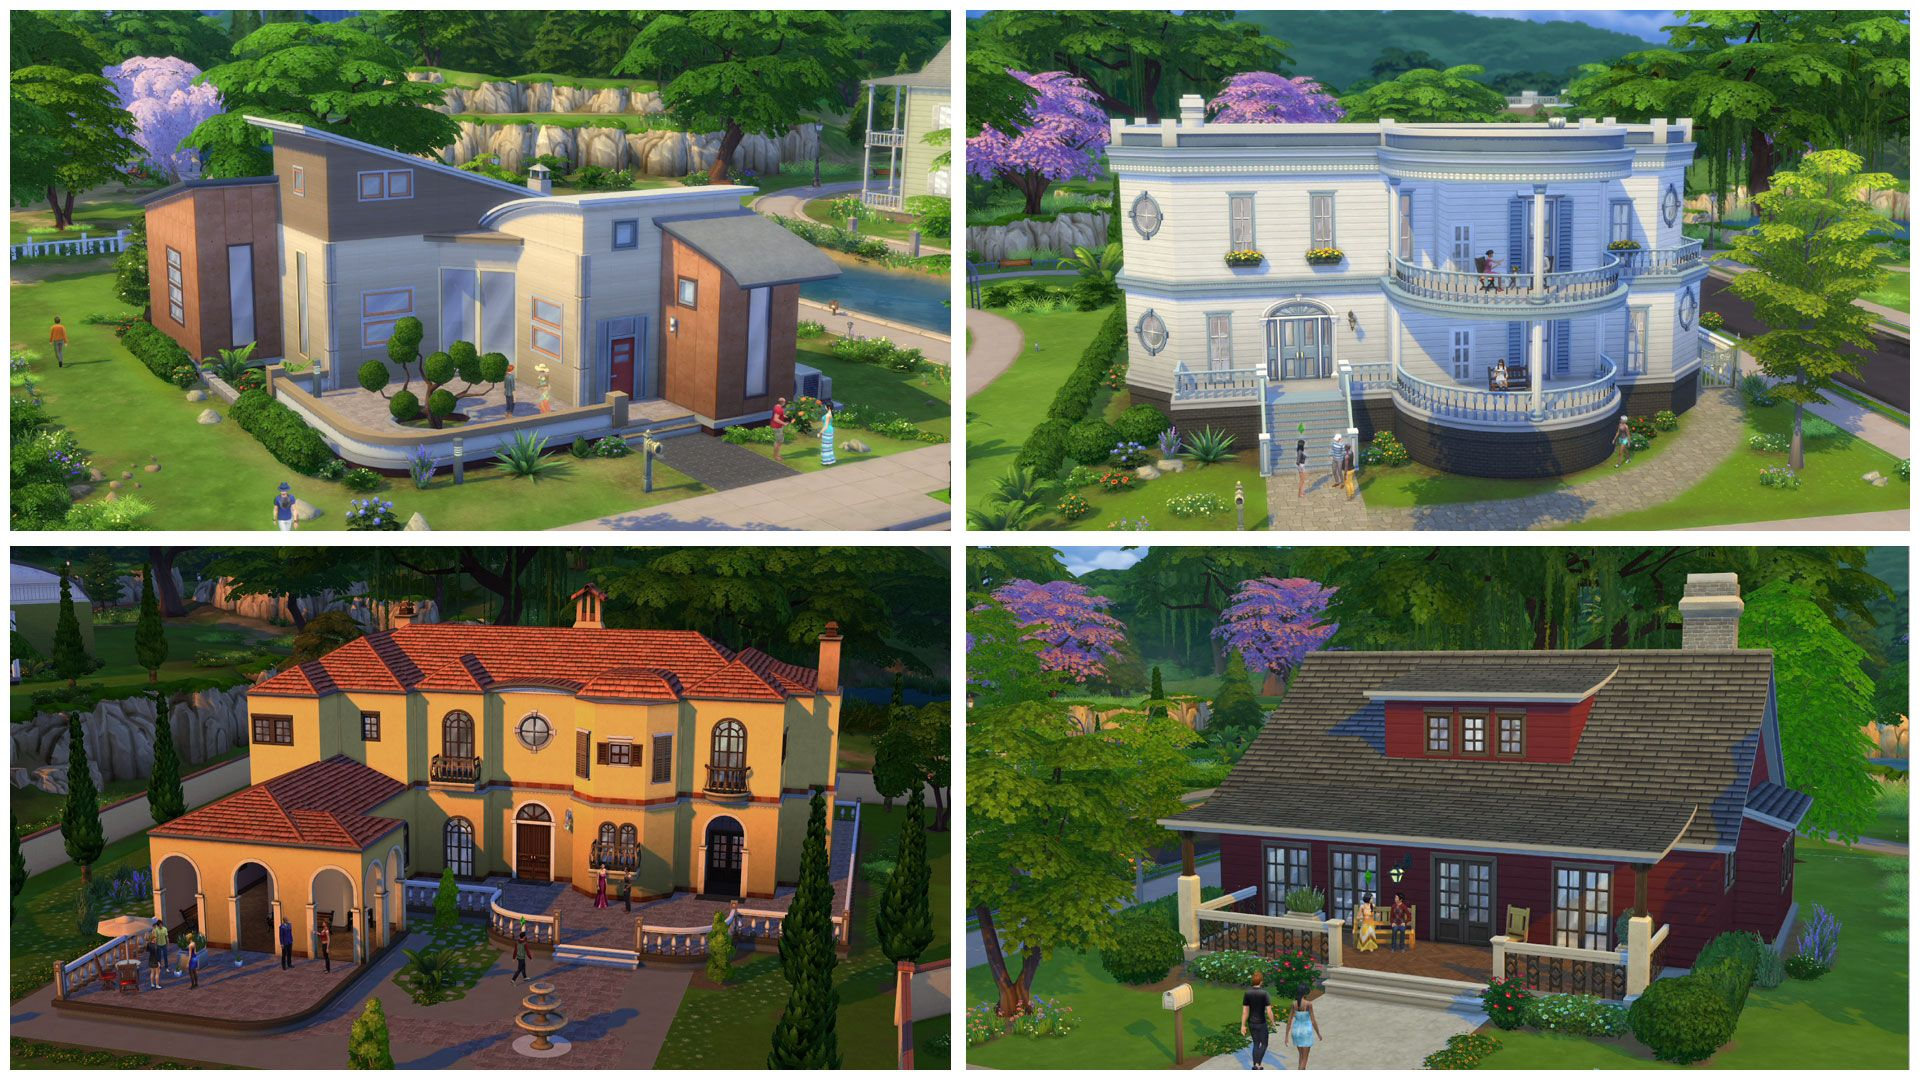 Urban treehouse sims 4 houses - The Sims 4 Build Mode Architecture